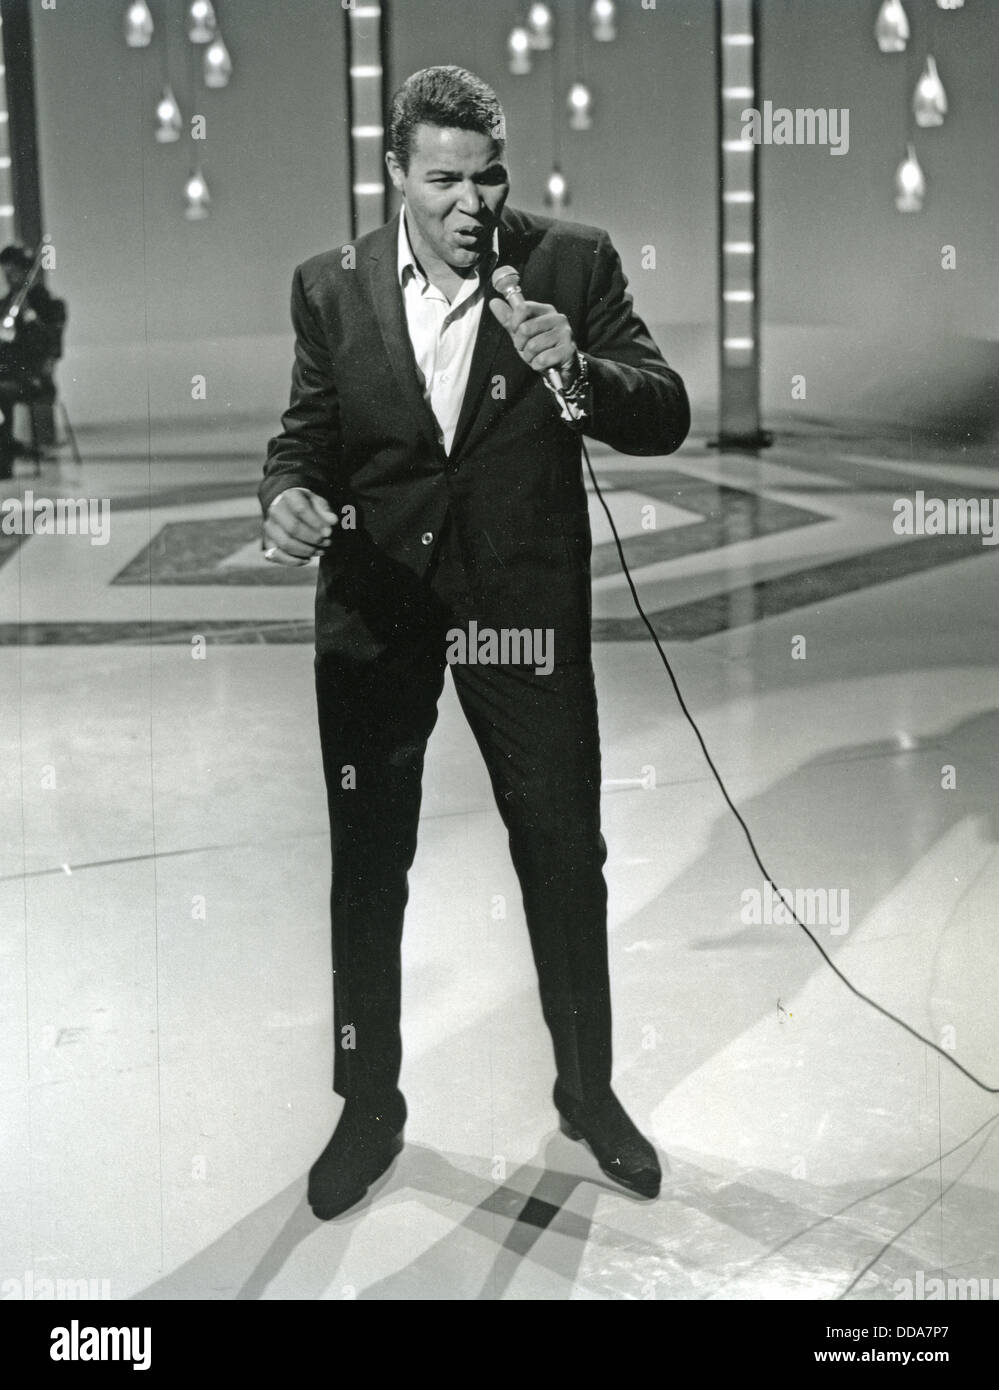 Congratulate, how old is singer chubby checkers